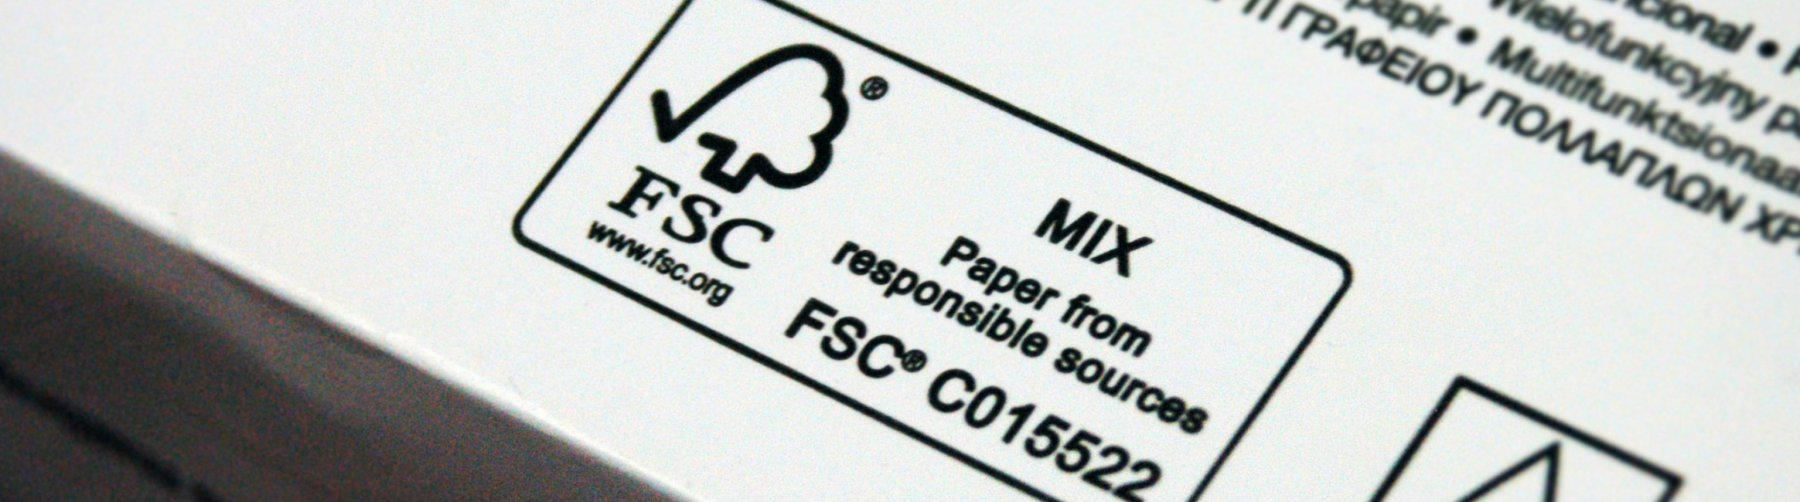 What it means when you see the fsc label on a product